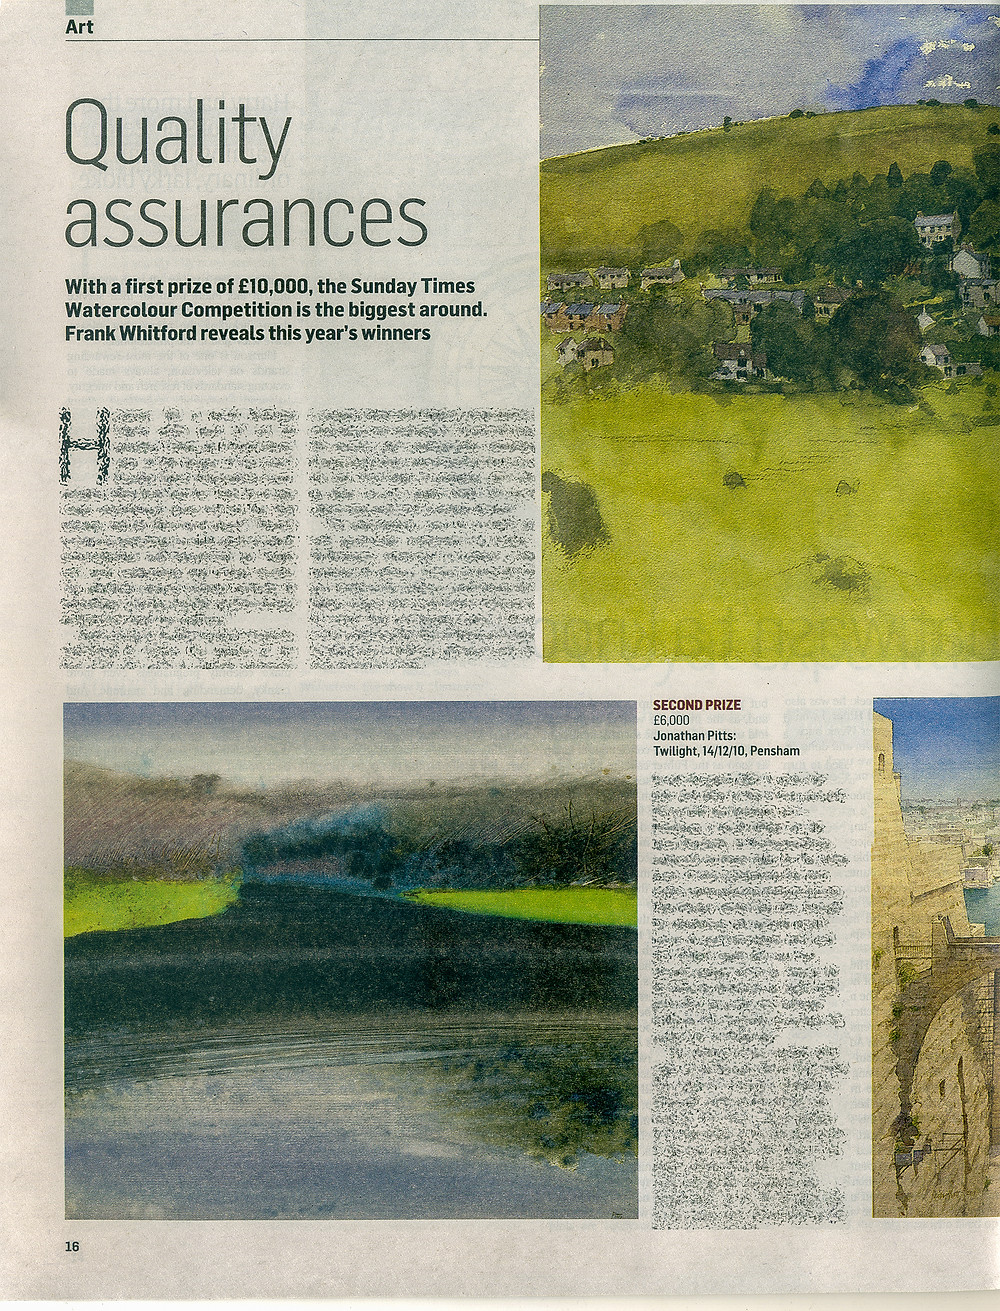 My painting Twilight, Pensham, 14/12/10, as it appeared on page 16 in the Culture Magazine supplement on 28th august 2011 as part of the Sunday Times newspaper. The article was written by Frank Whitford. I do not own copyright for this content.